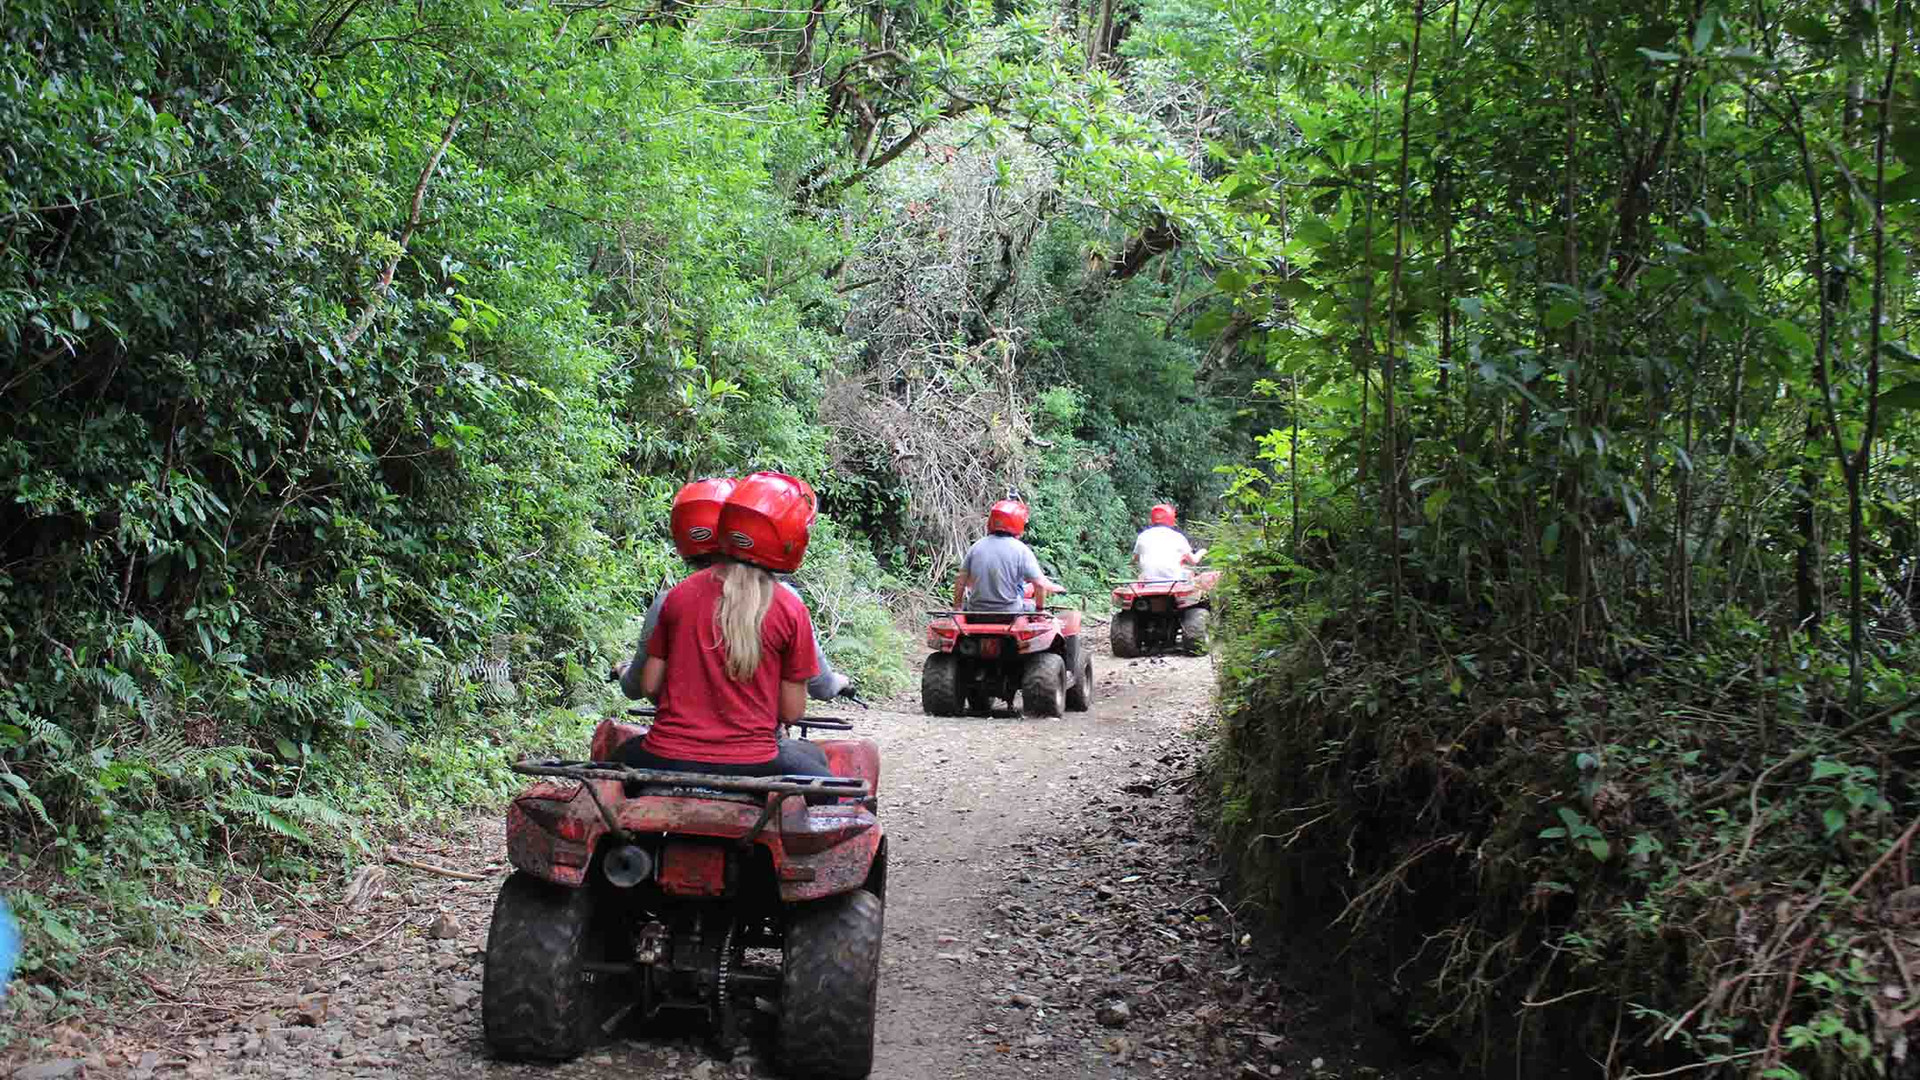 Monteverde Costa Rica ATV adventure tour group driving riding on jungle trail